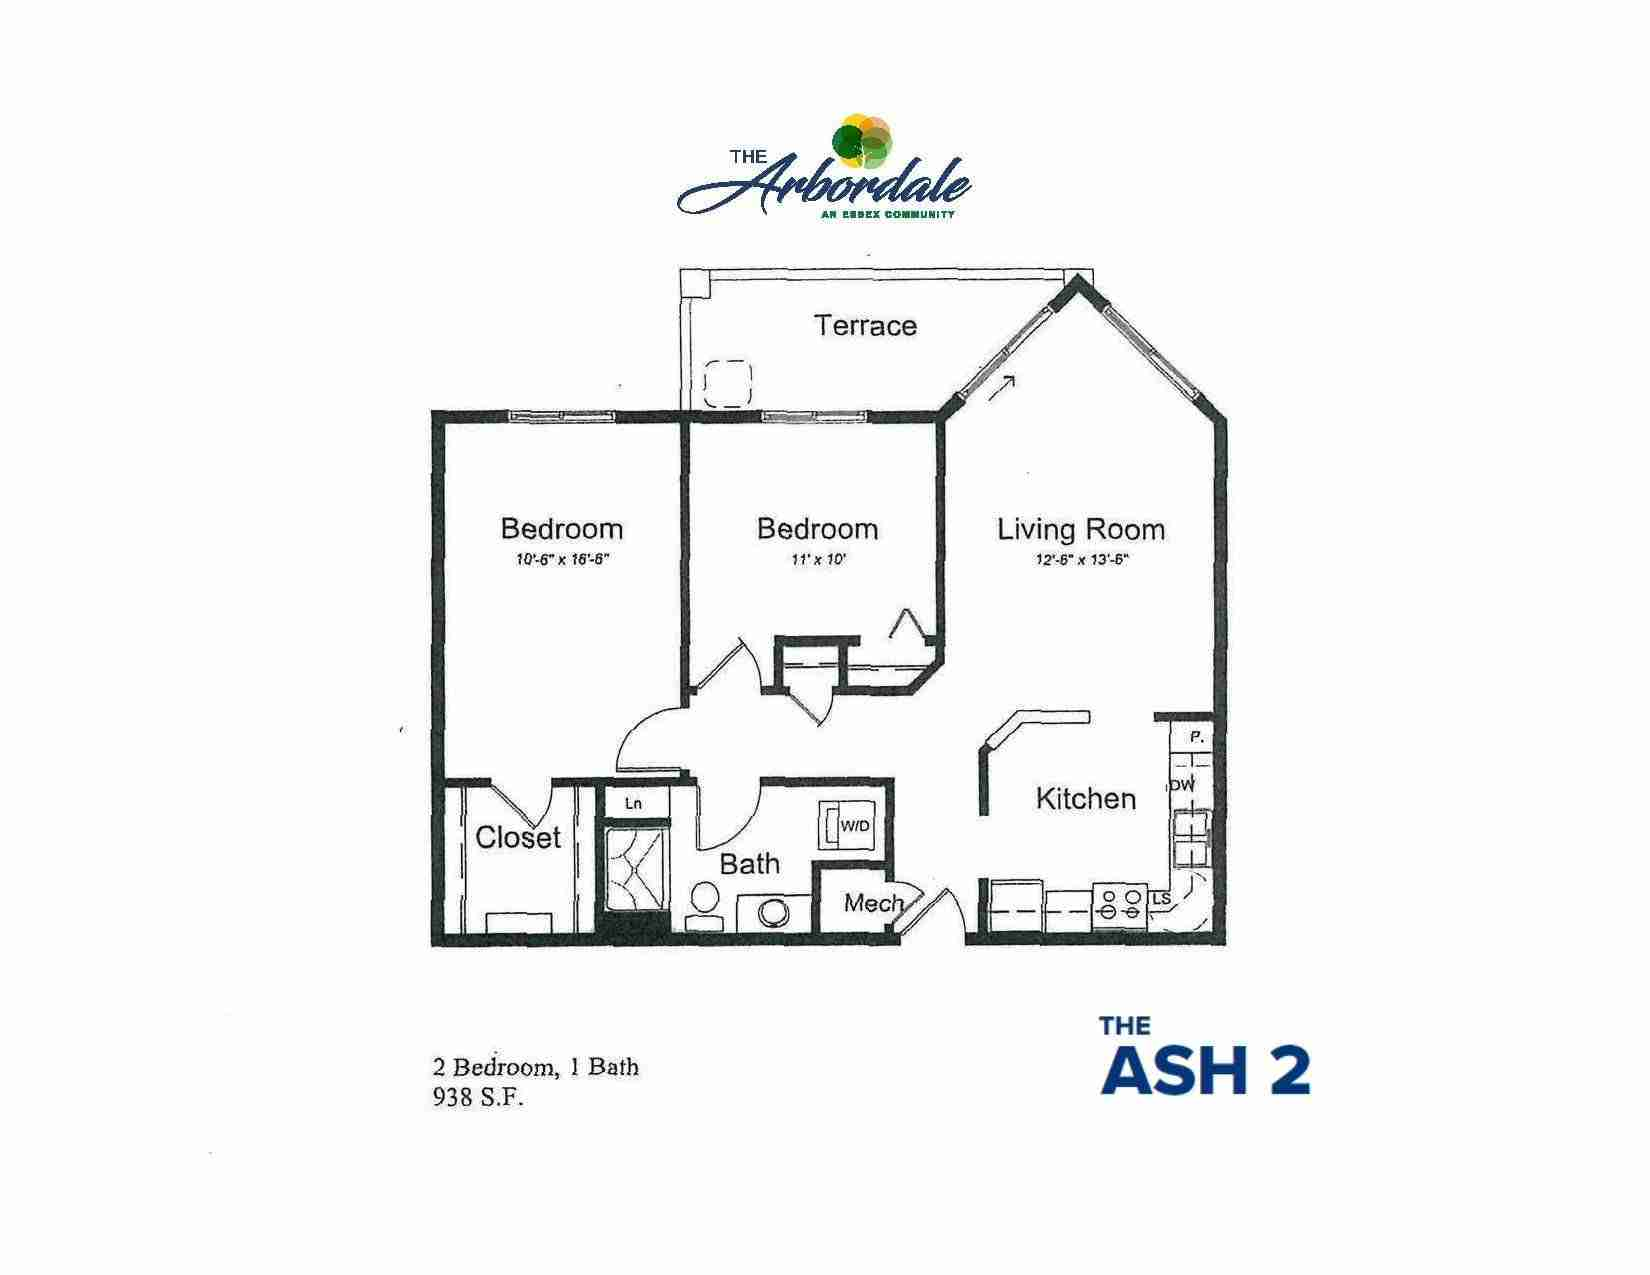 the ash 2 floor plan, 2 bedroom, 1 bath, 938 sq ft